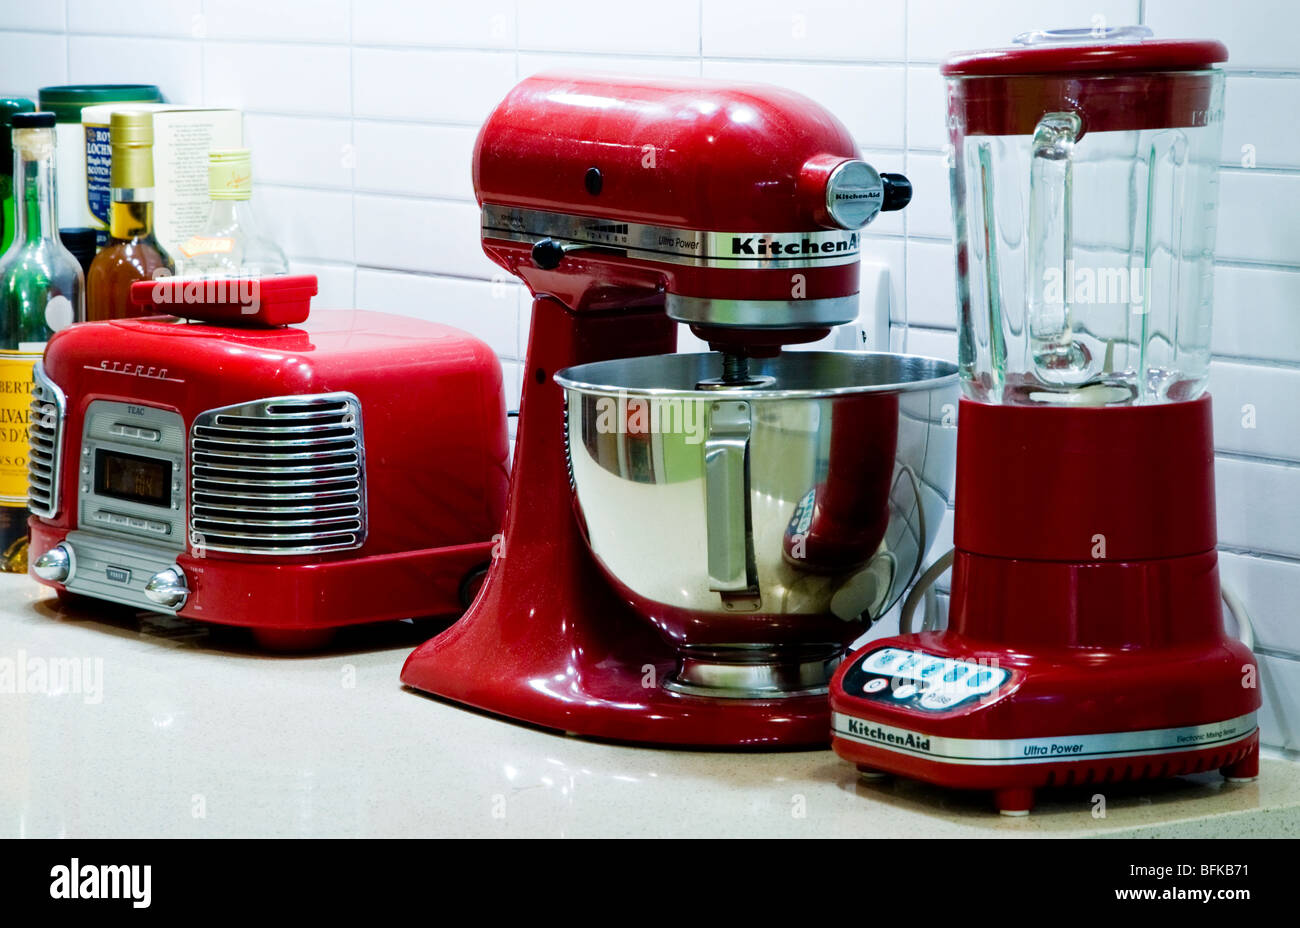 red kitchen appliances safety shoes for women retro on a worktop by kitchenaid stock photo